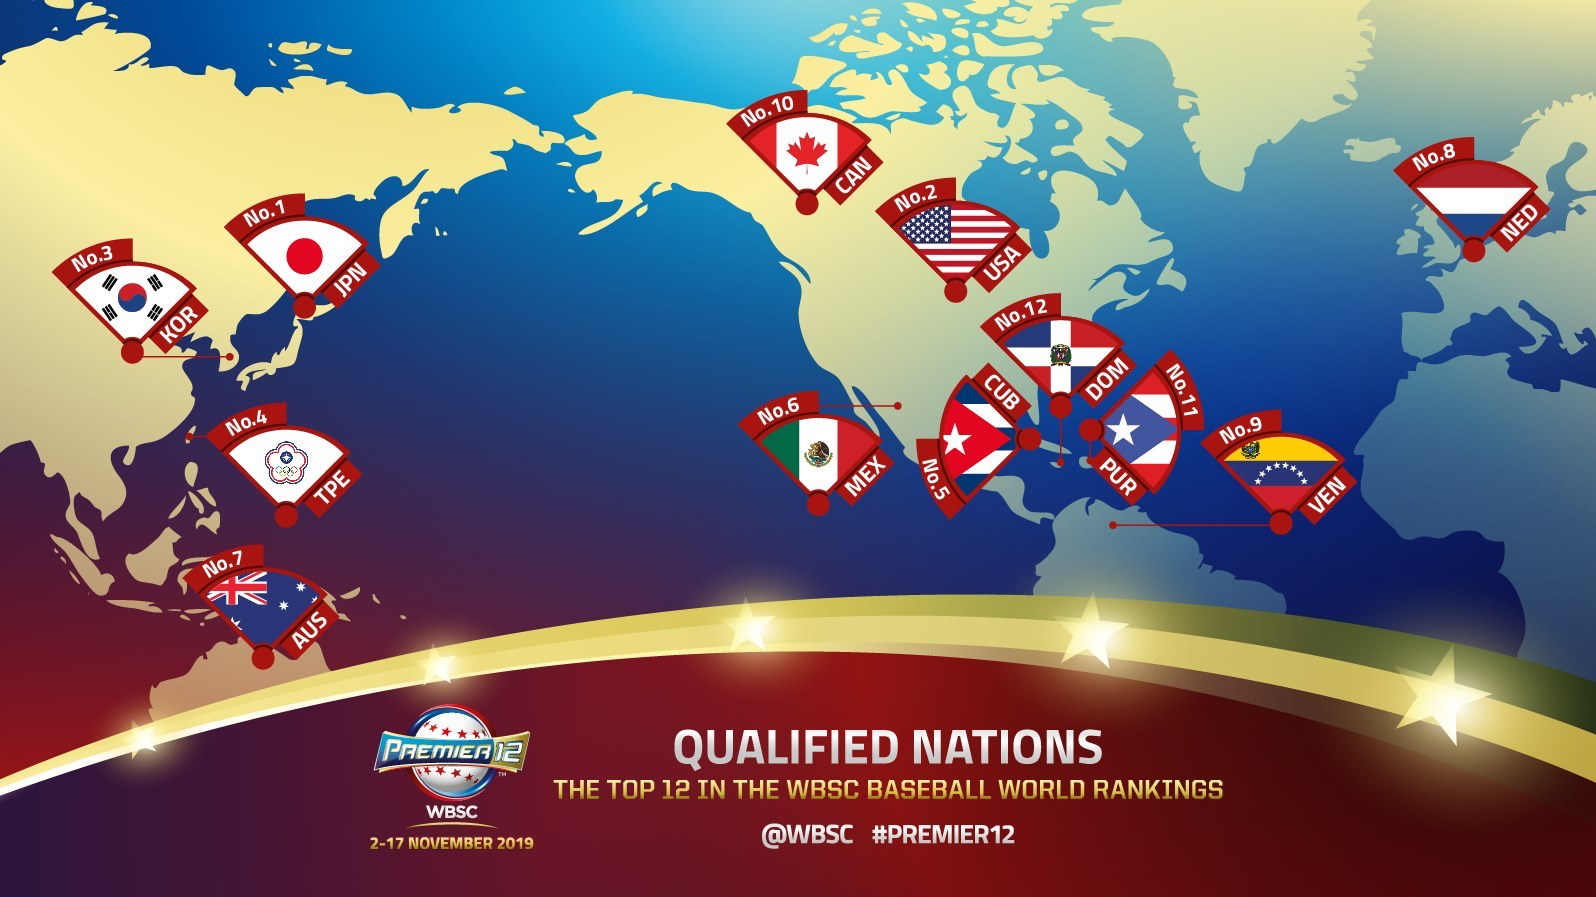 Canada qualifies for WBSC Premier 12